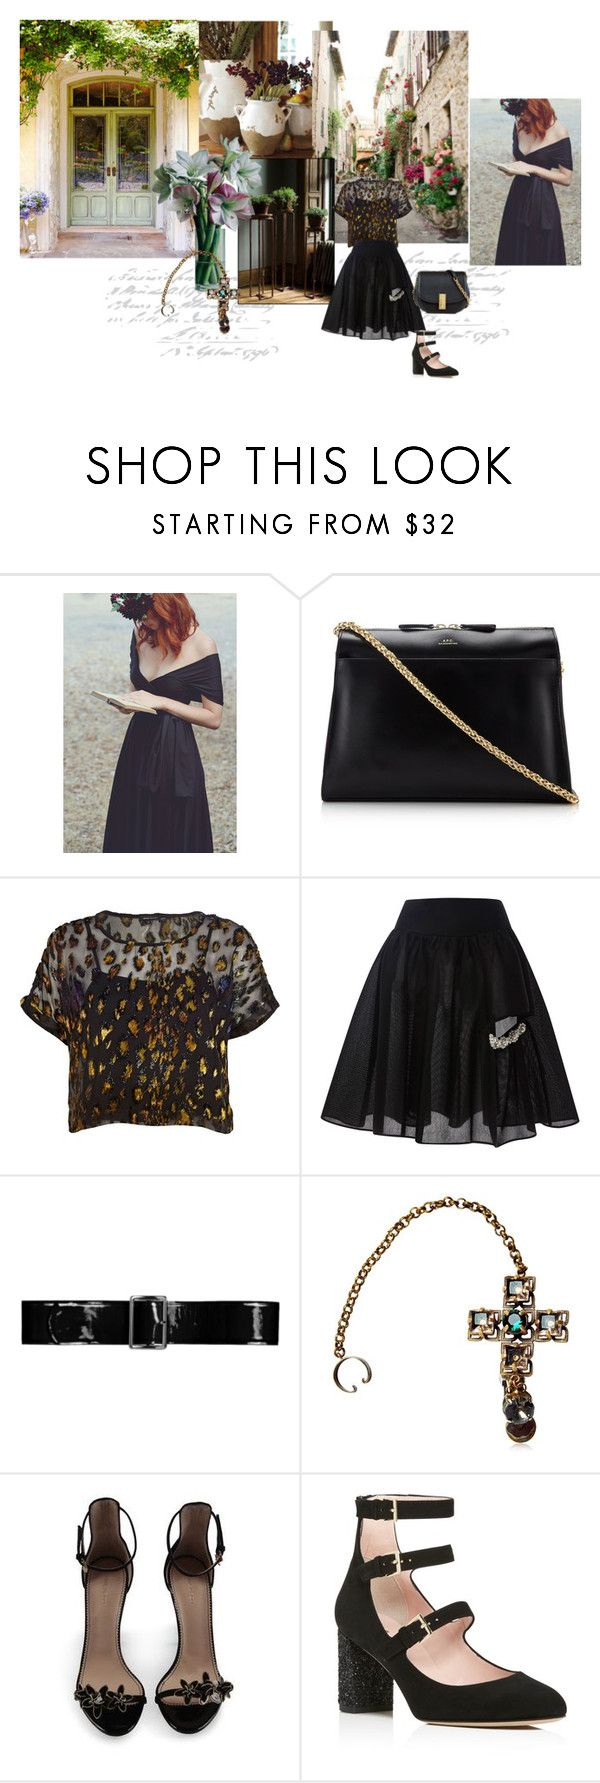 """Negro..."" by maryrosagaray ❤ liked on Polyvore featuring Pottery Barn, A.P.C., River Island, Simone Rocha, By Malene Birger, Tory Burch, Dsquared2, Kate Spade and Marc Jacobs"